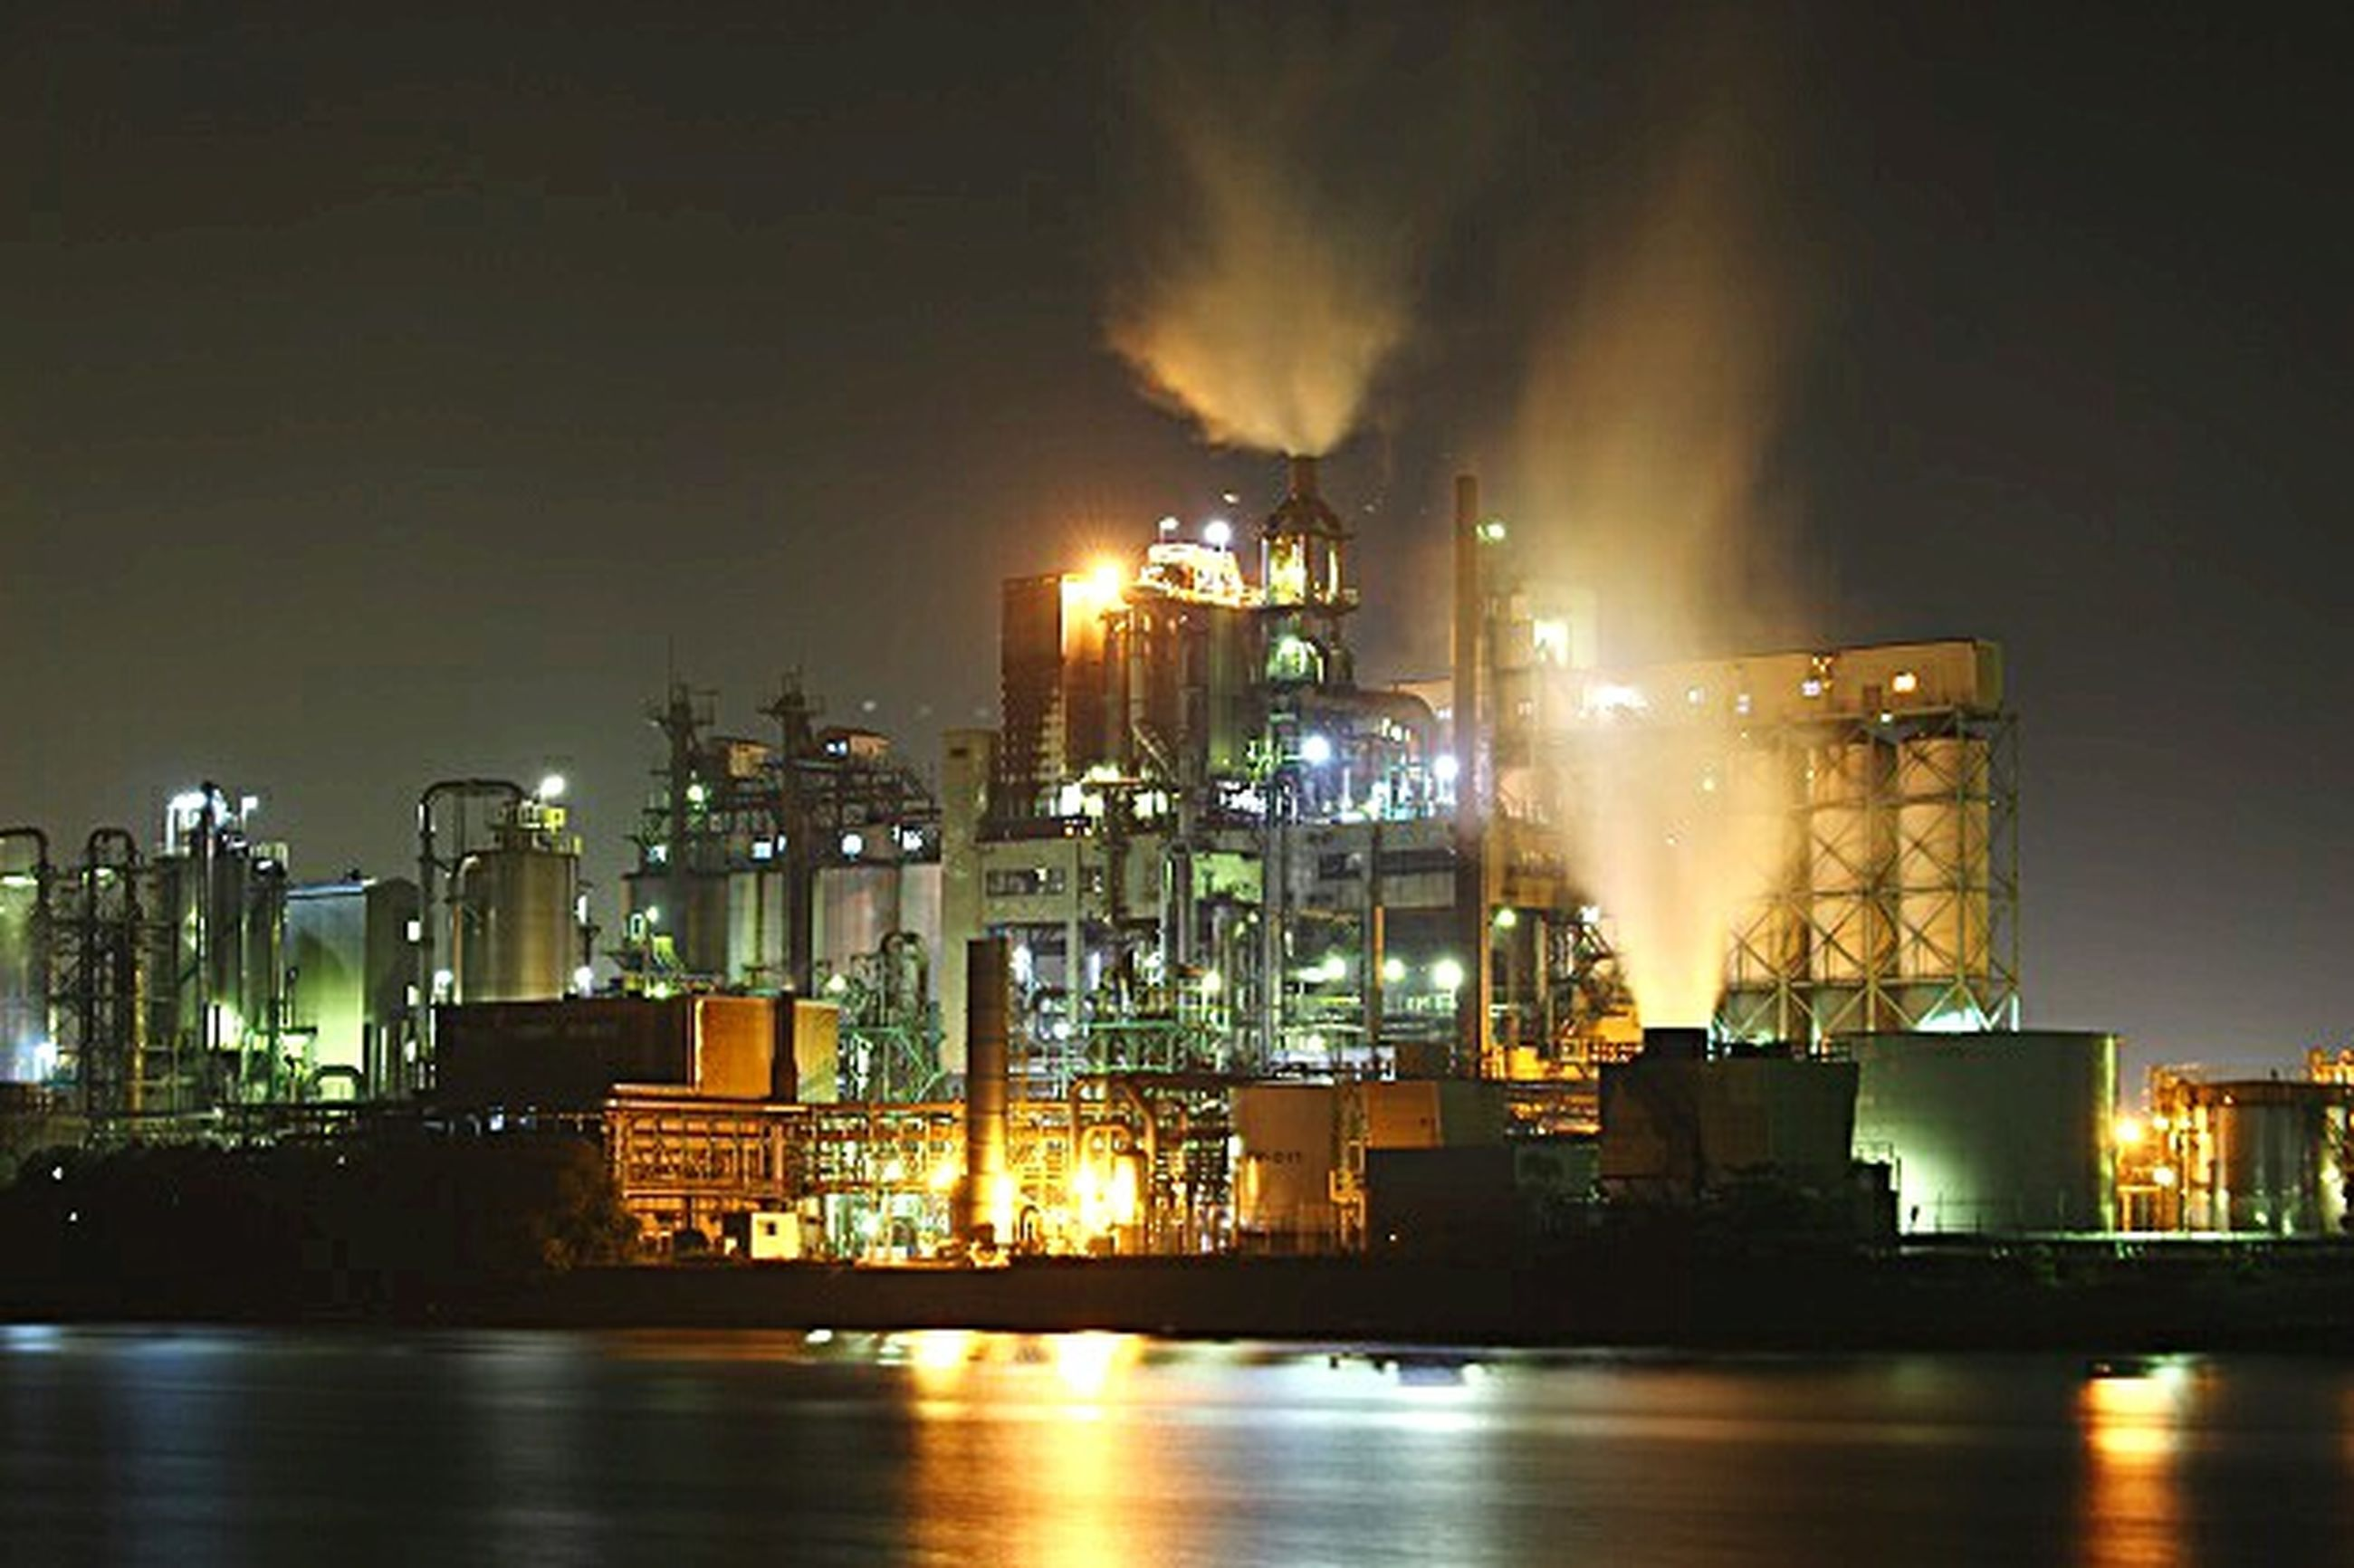 night, factory, industry, fuel and power generation, oil industry, business finance and industry, environment, social issues, illuminated, refinery, no people, gas, oil refinery, outdoors, metal industry, distillation, petrochemical plant